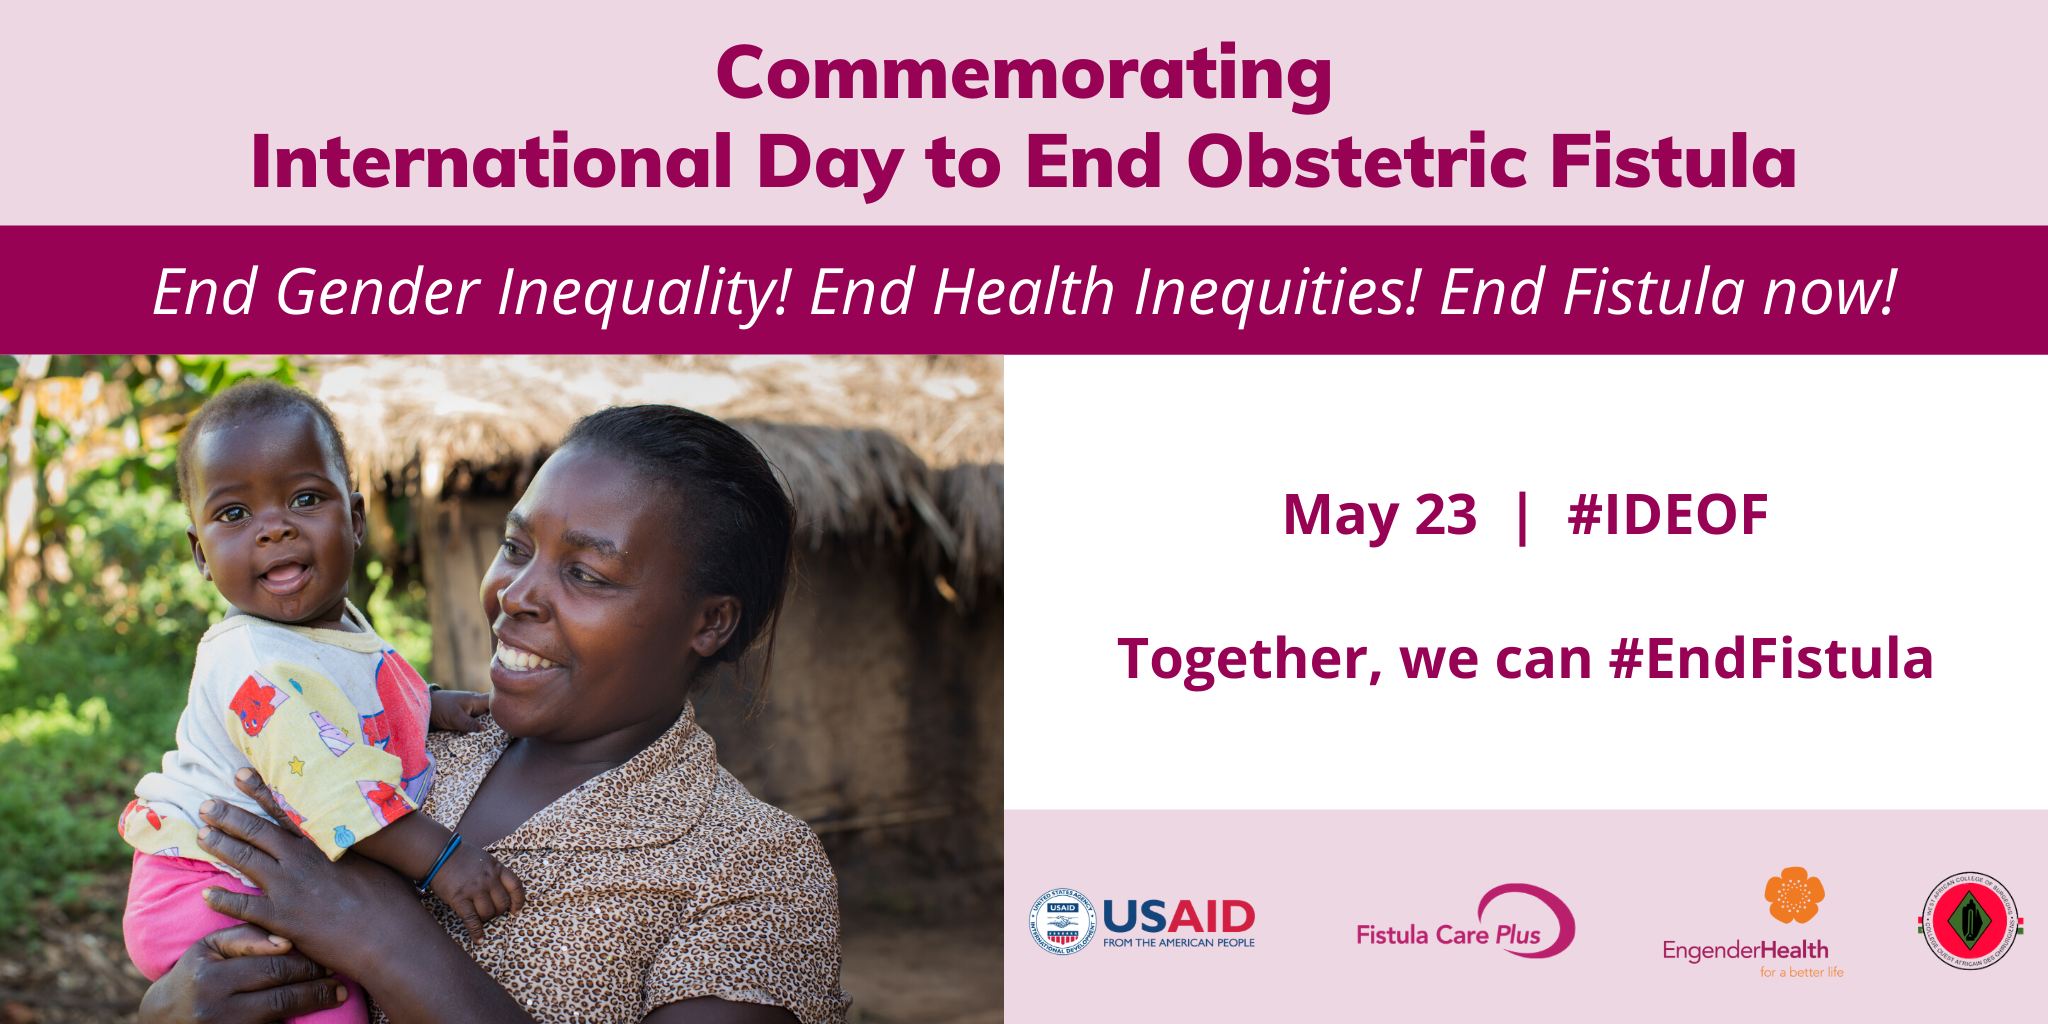 Commemorating International Day to End Obstetric Fistula (IDEOF)